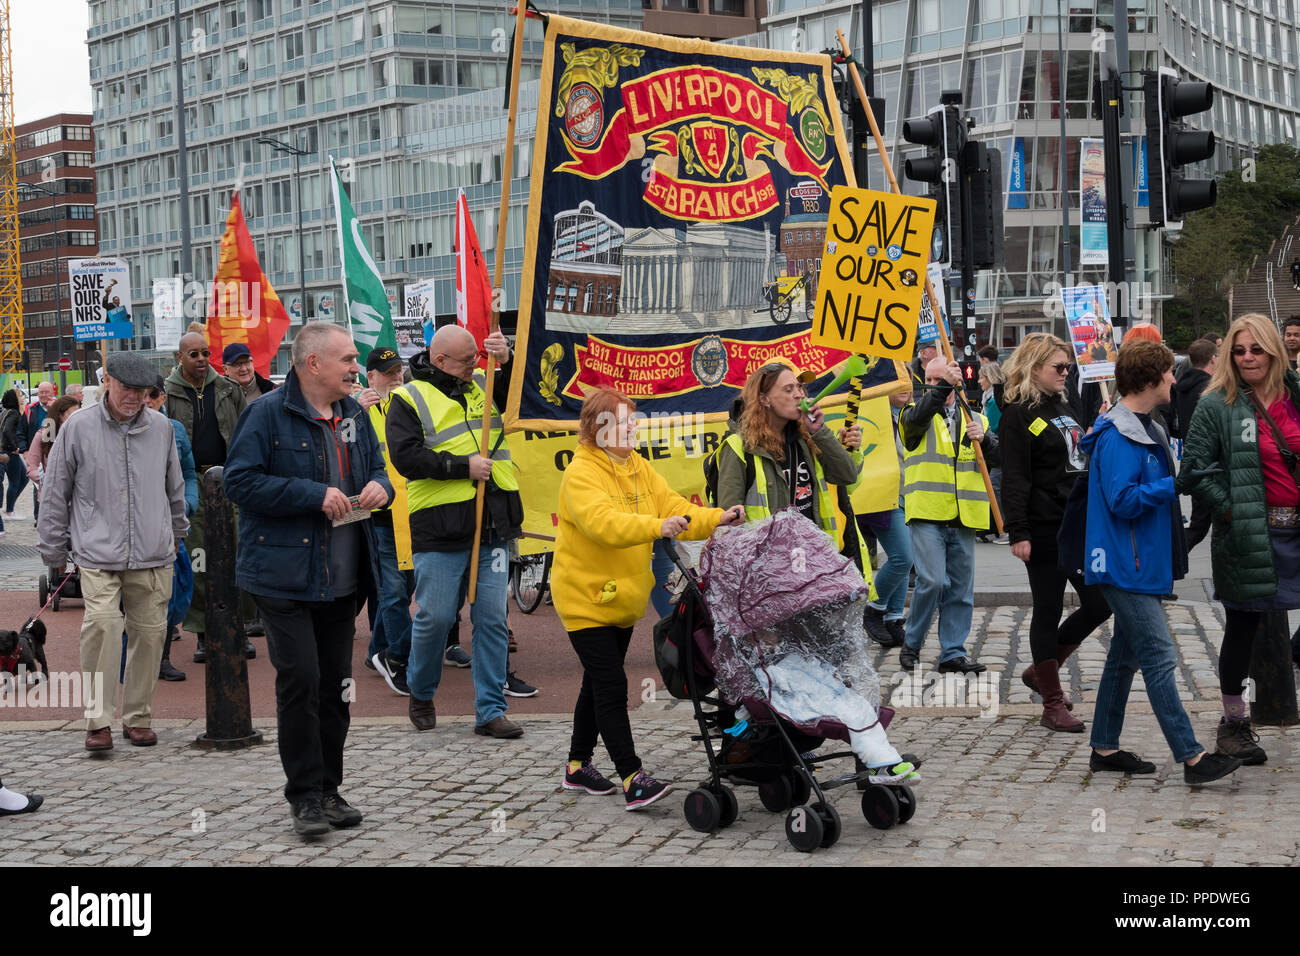 Save our NHS demonstration in Liverpool UK September 2018. - Stock Image